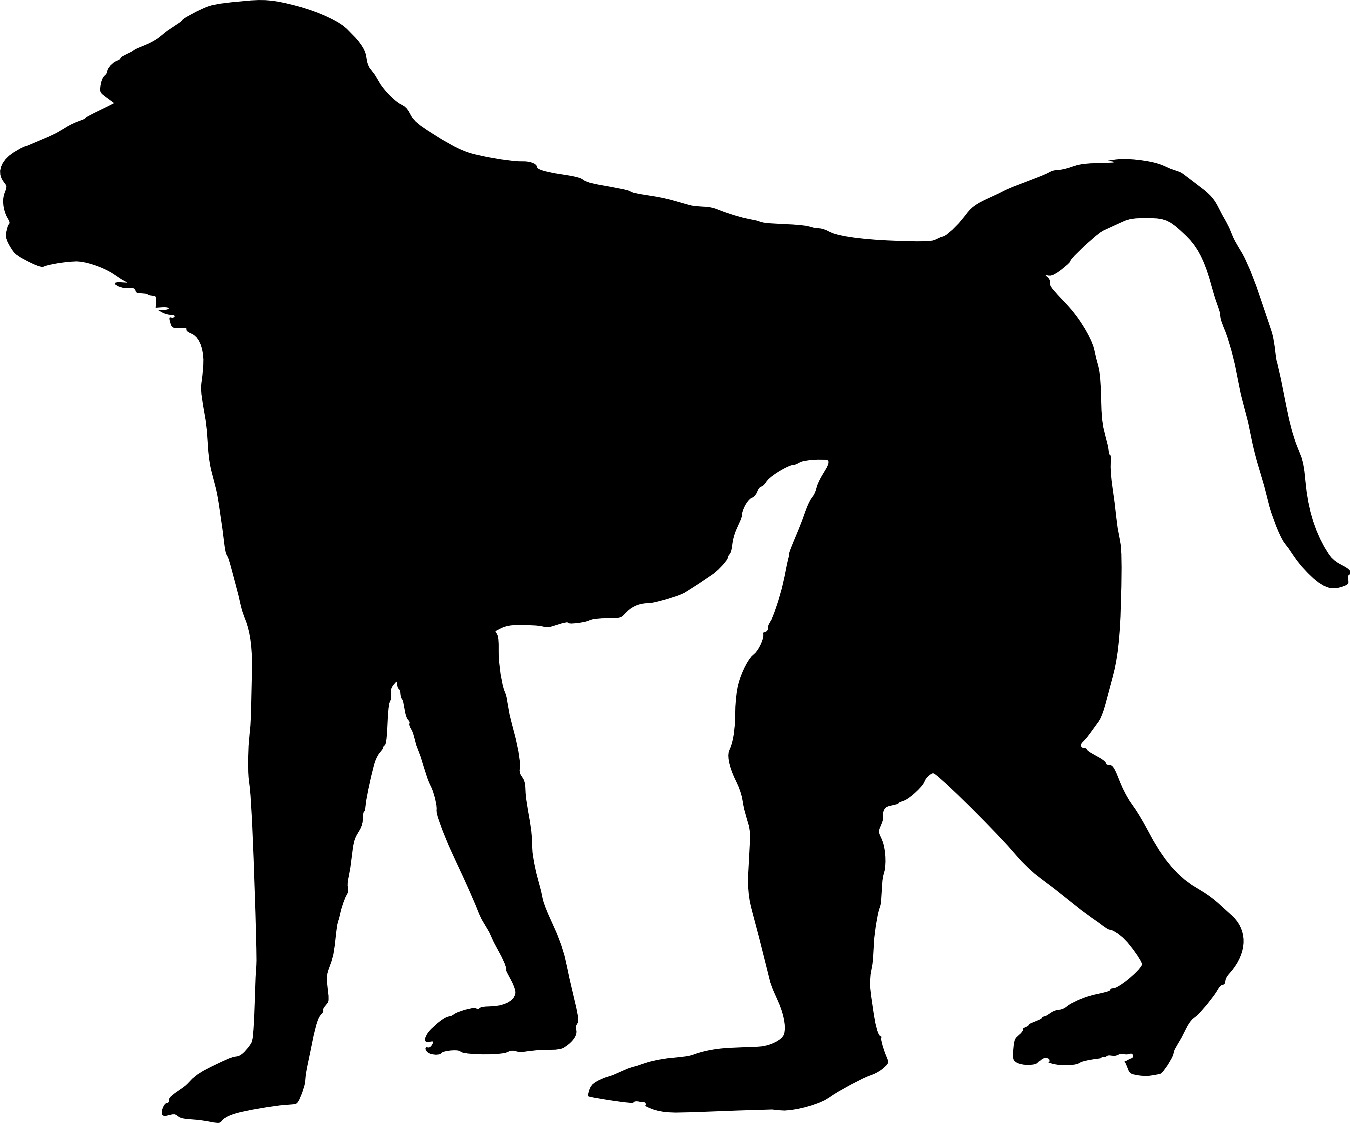 Silhouette at getdrawings com. Ape clipart baboon